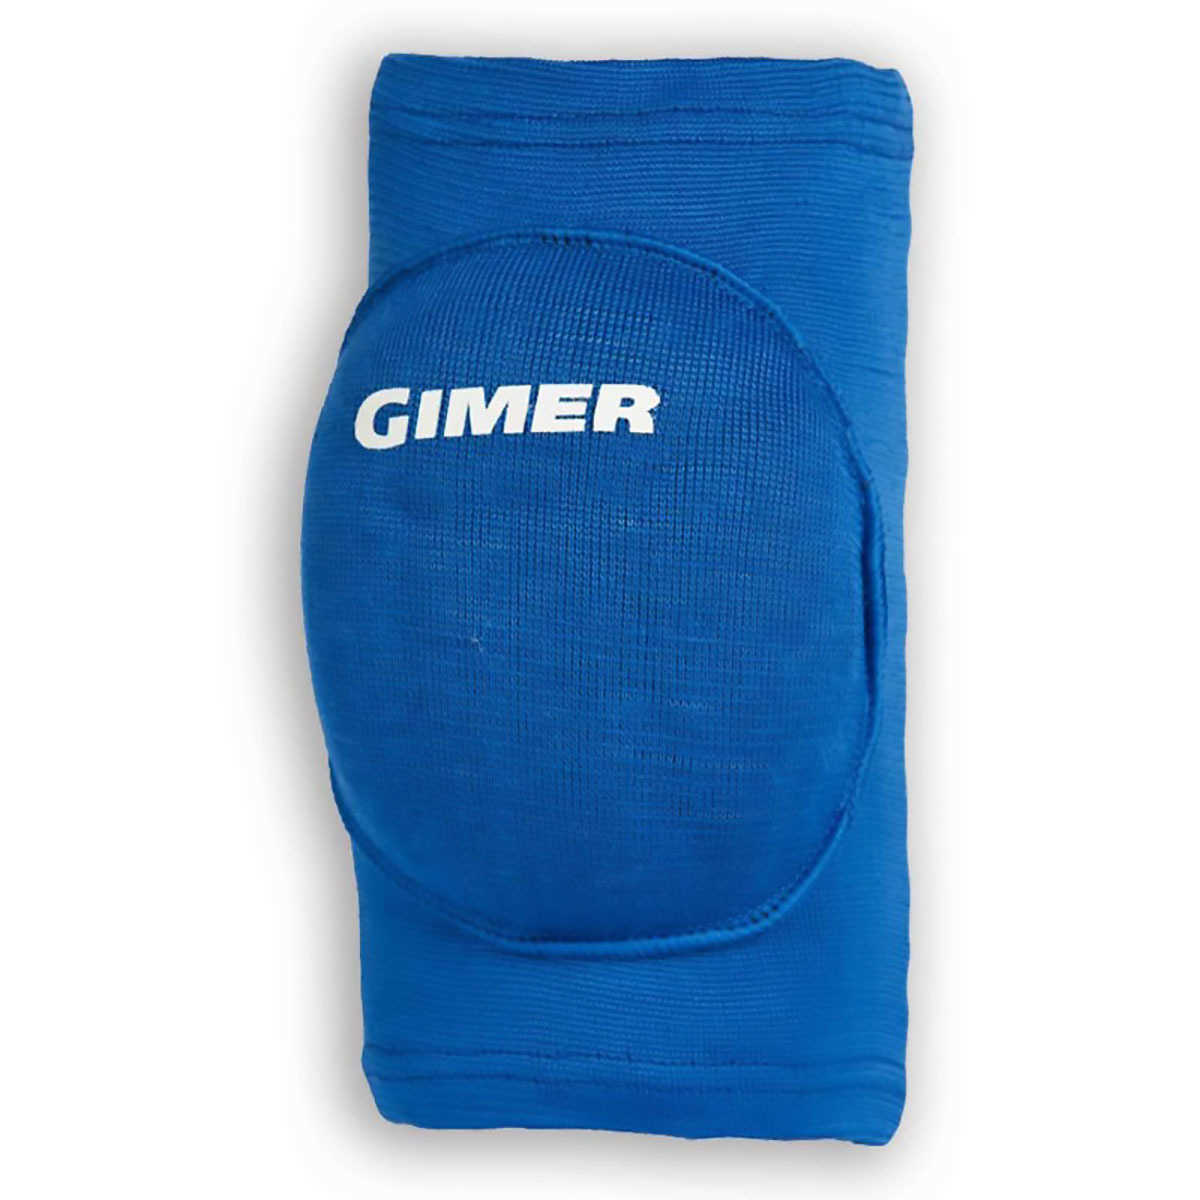 MAG_GIMER 7/523 KNEE KNEE KNEE ADULT 5 PIECES Pallavolo ACCESSORI SPORTIVI 634345